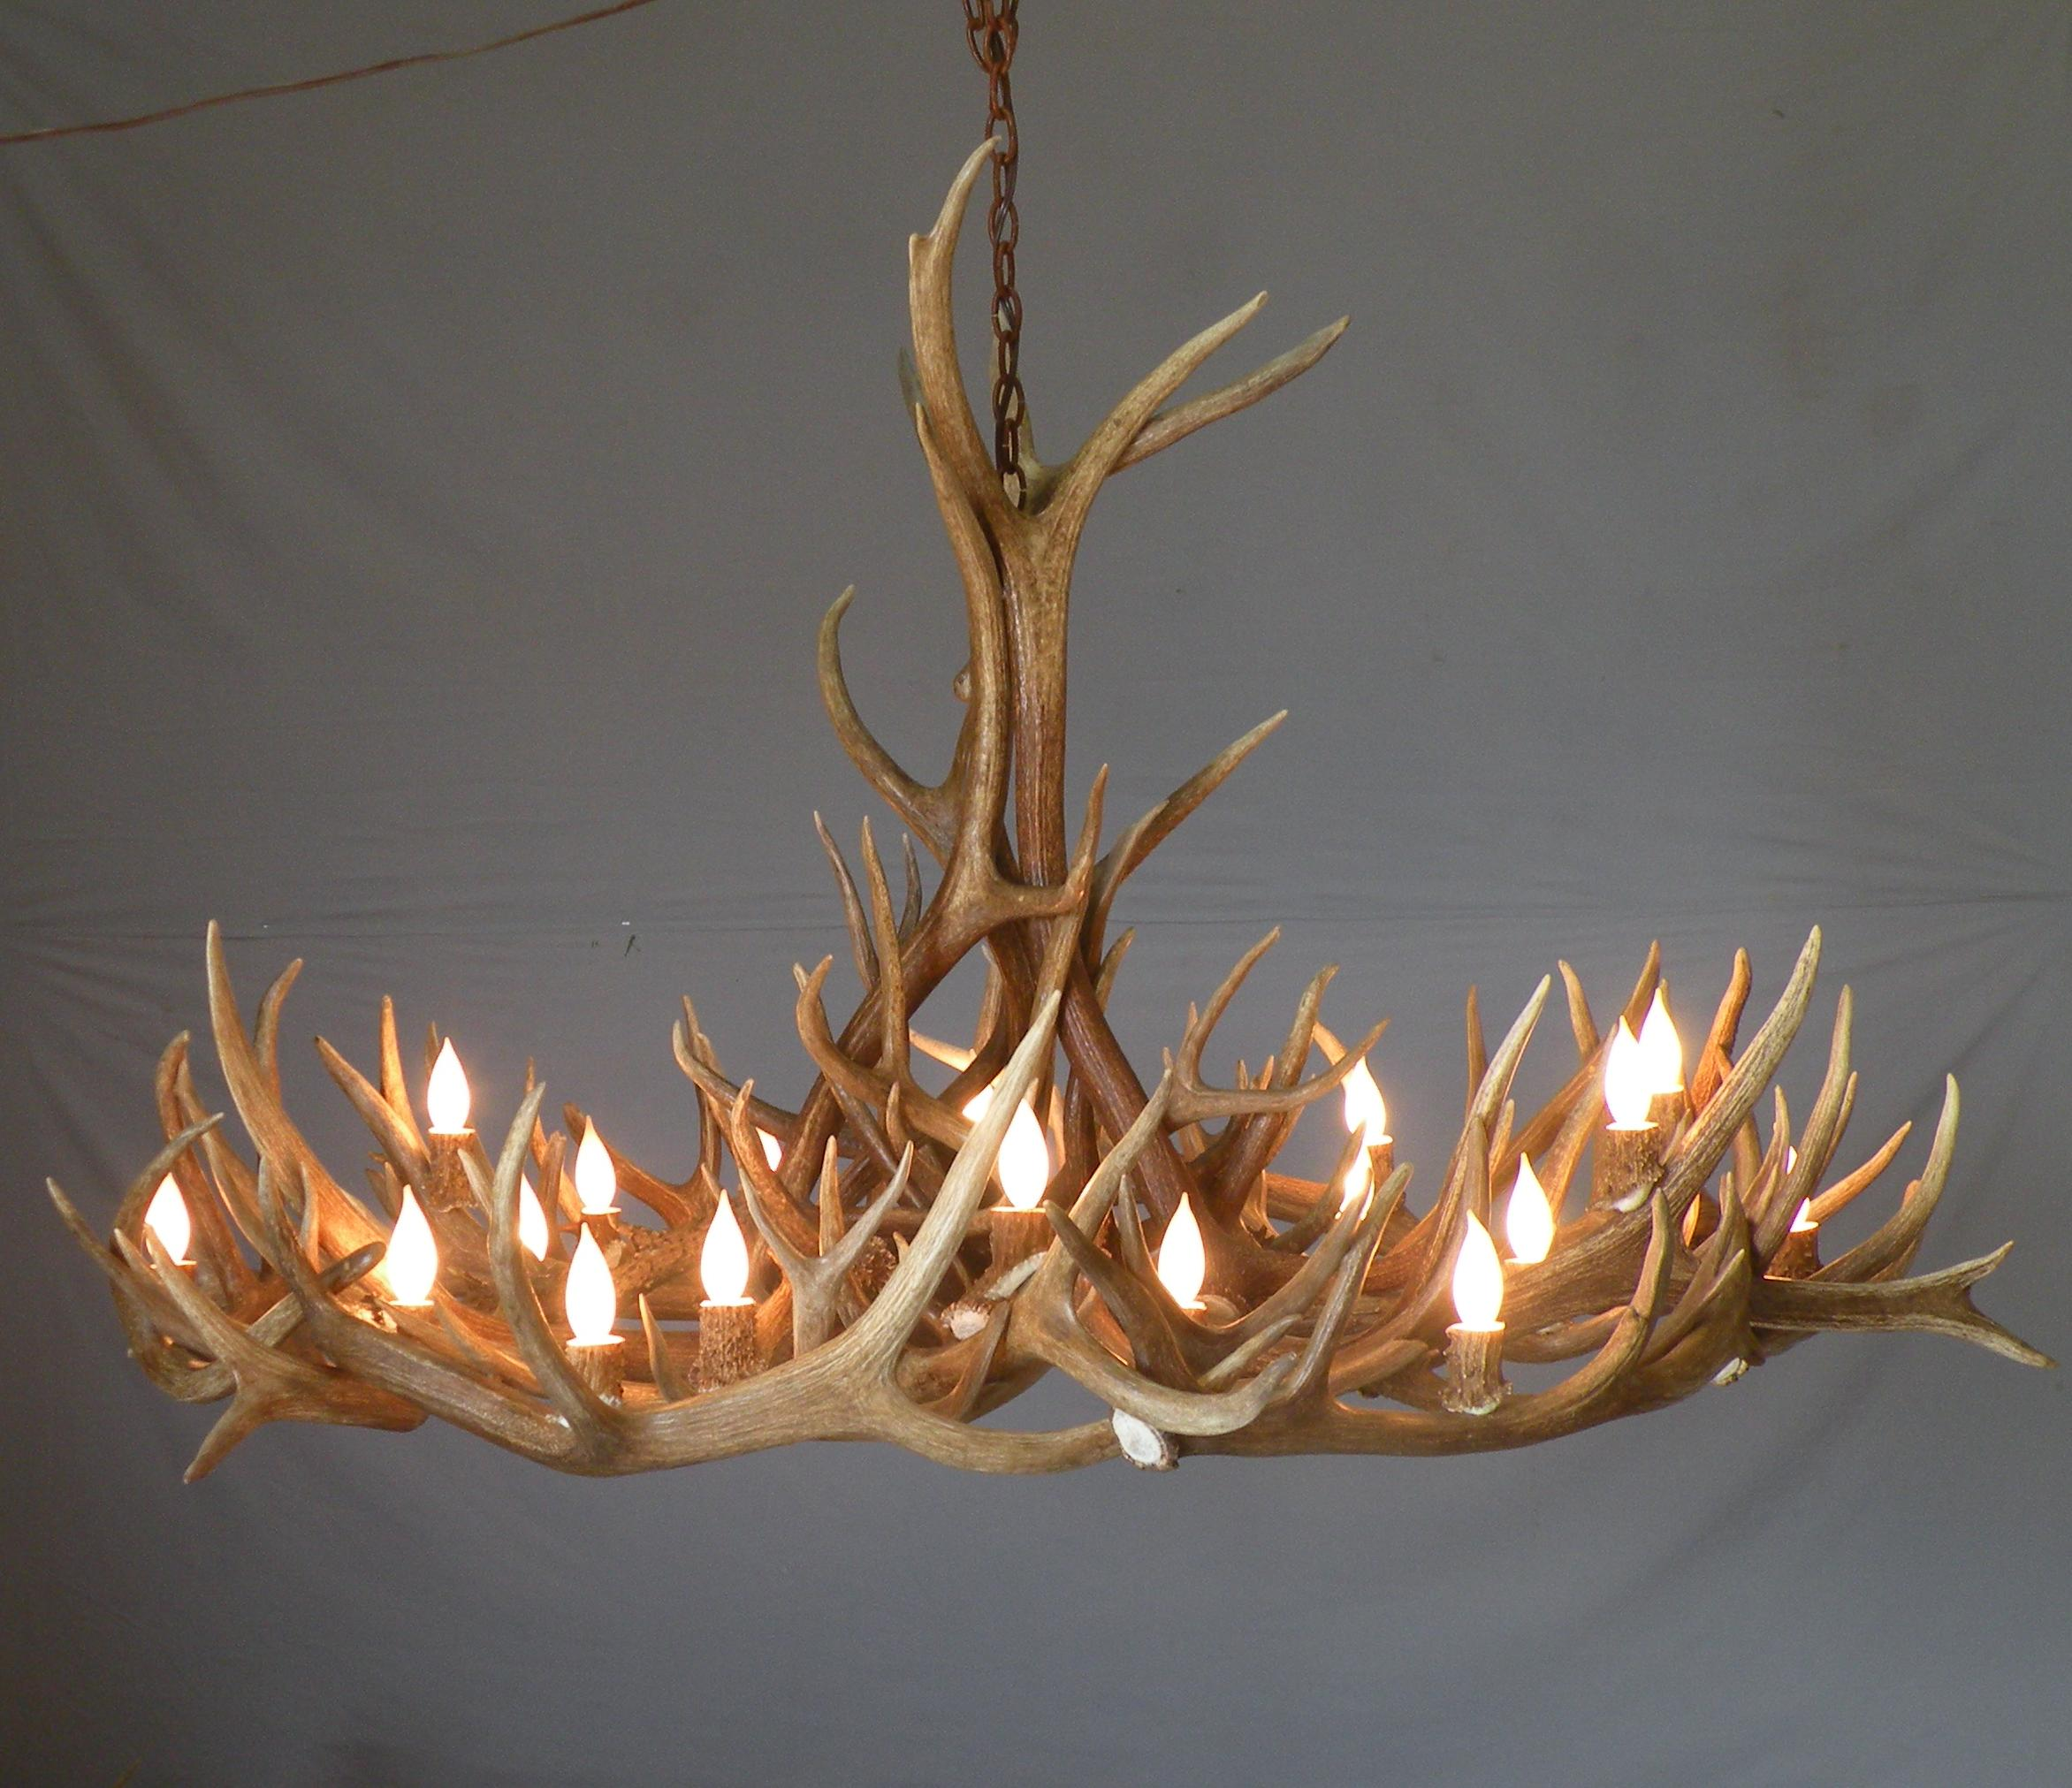 20-Incredibly-Beautiful-Chandeliers-That-Will-Mesmerize-You-homesthetics-1